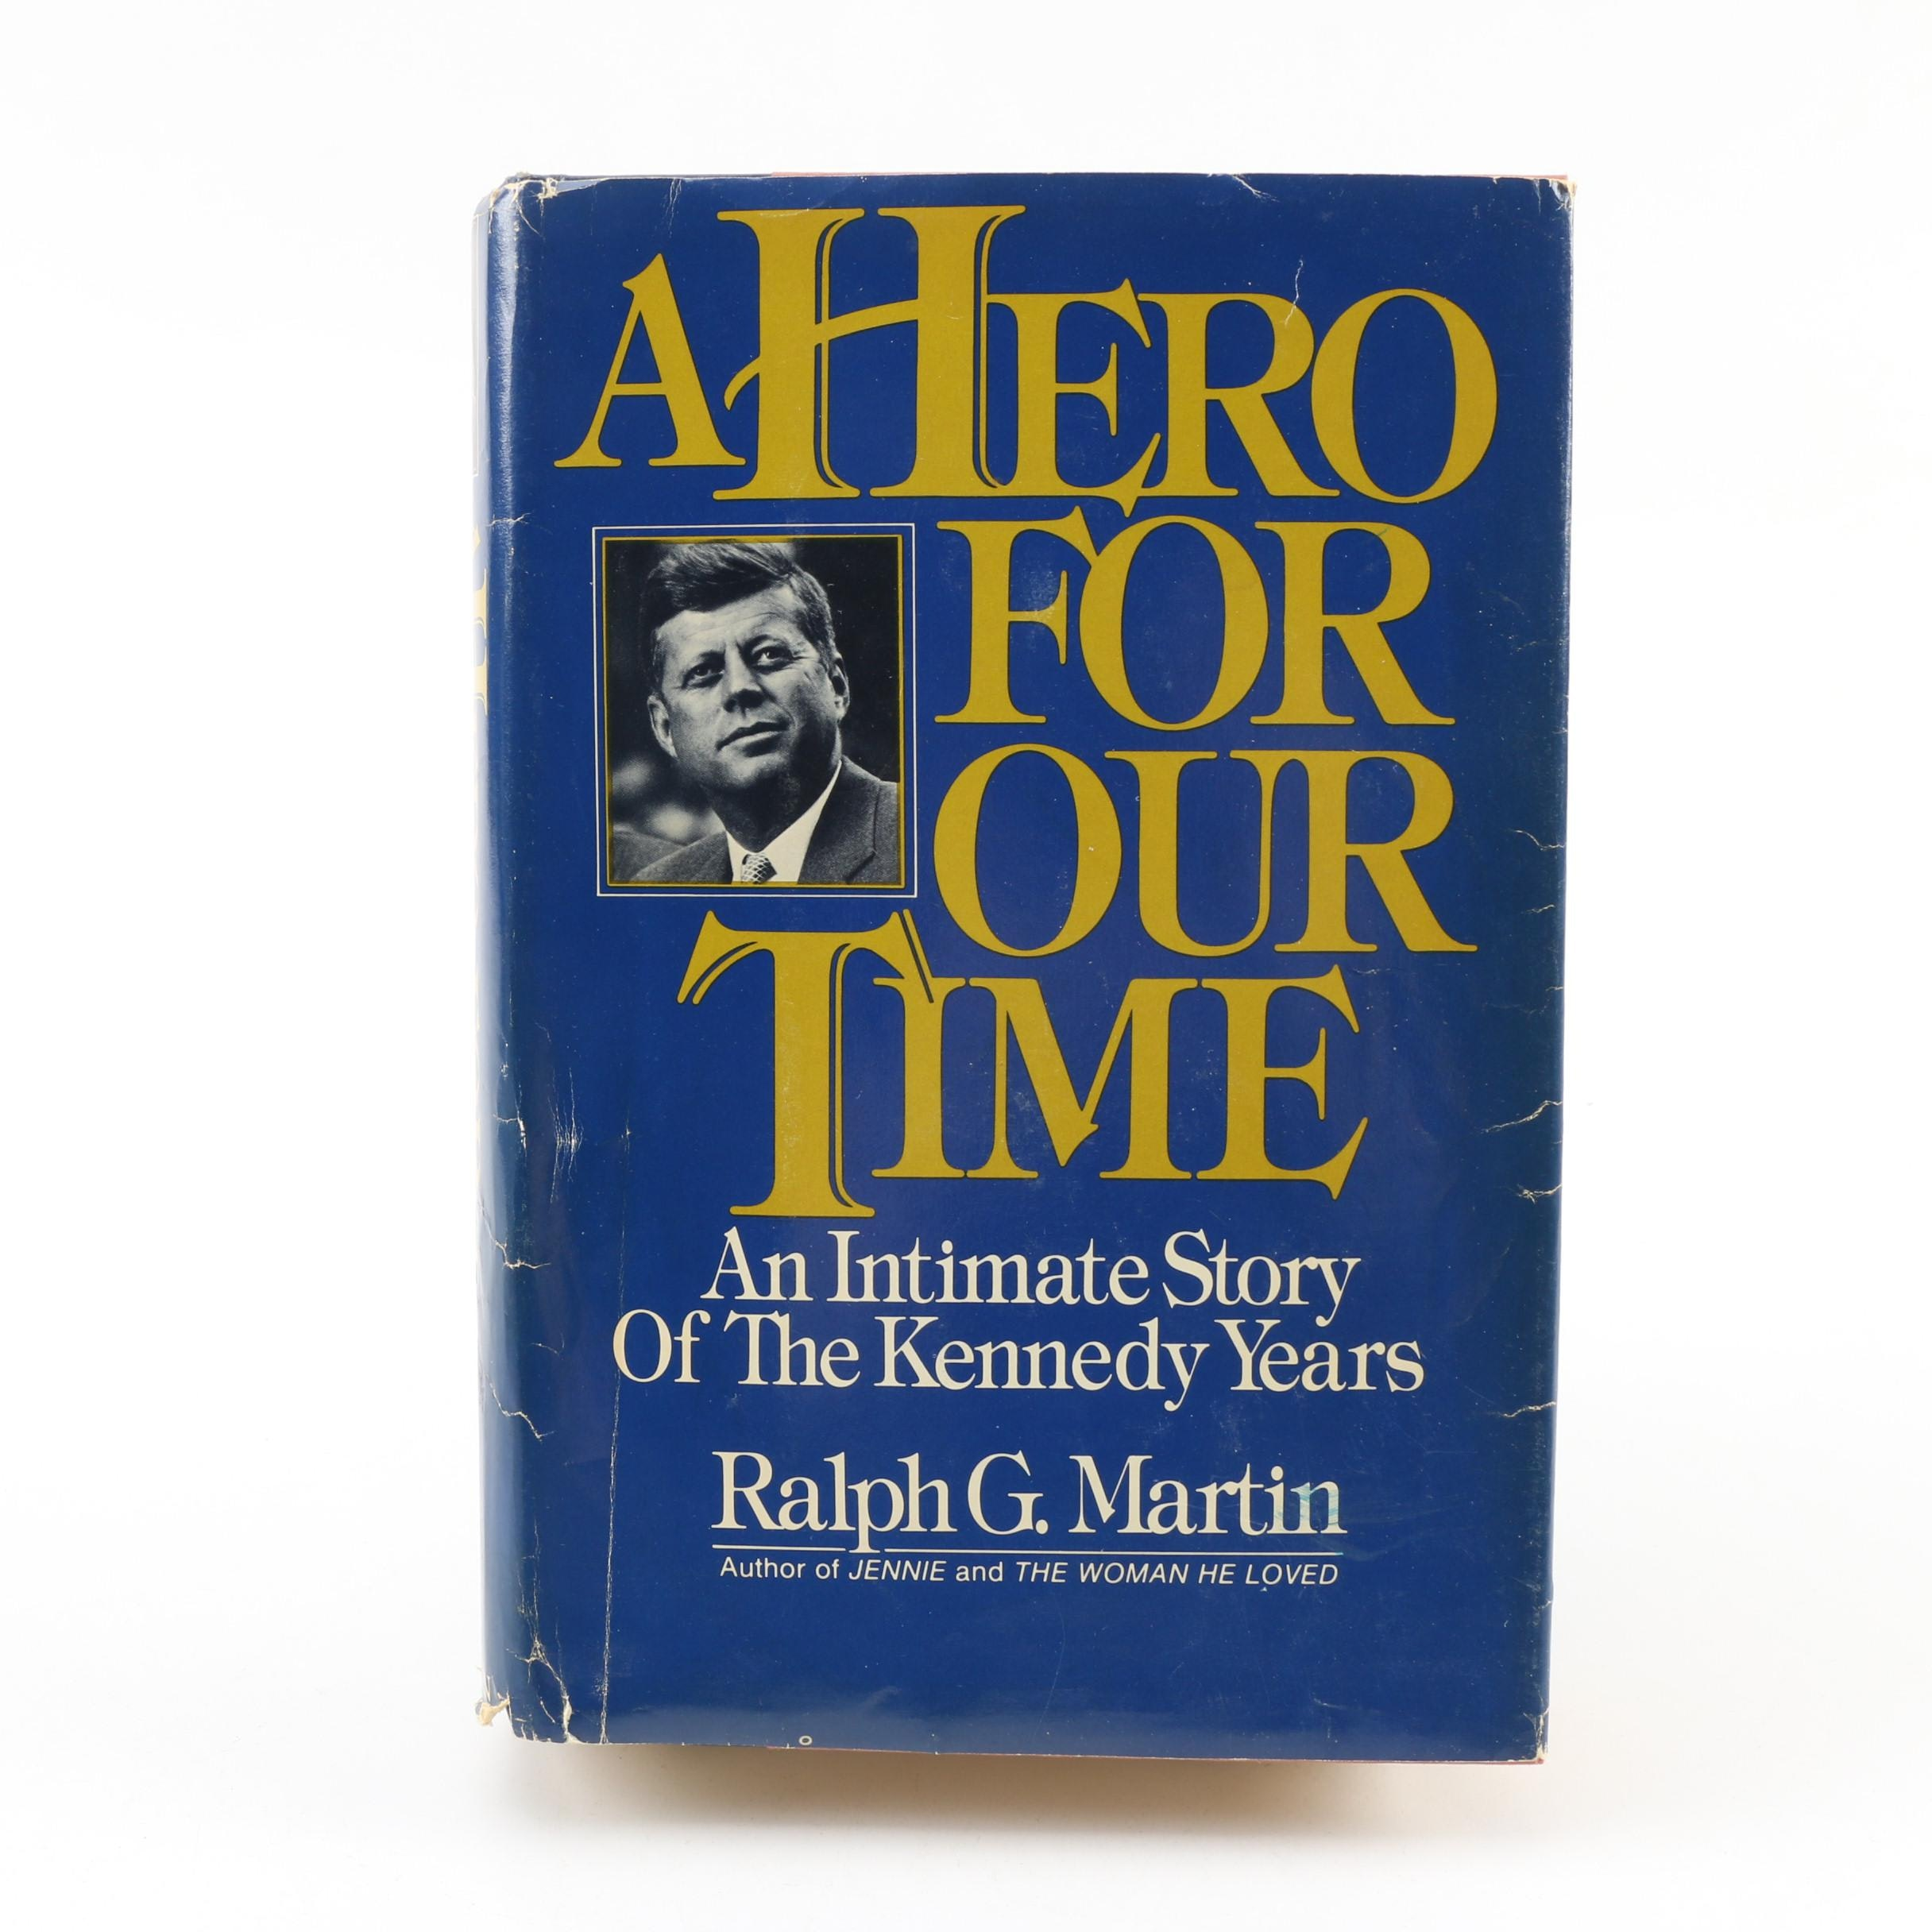 """A Hero for Our Time: An Intimate Story of the Kennedy Years"" by Ralph G. Martin"